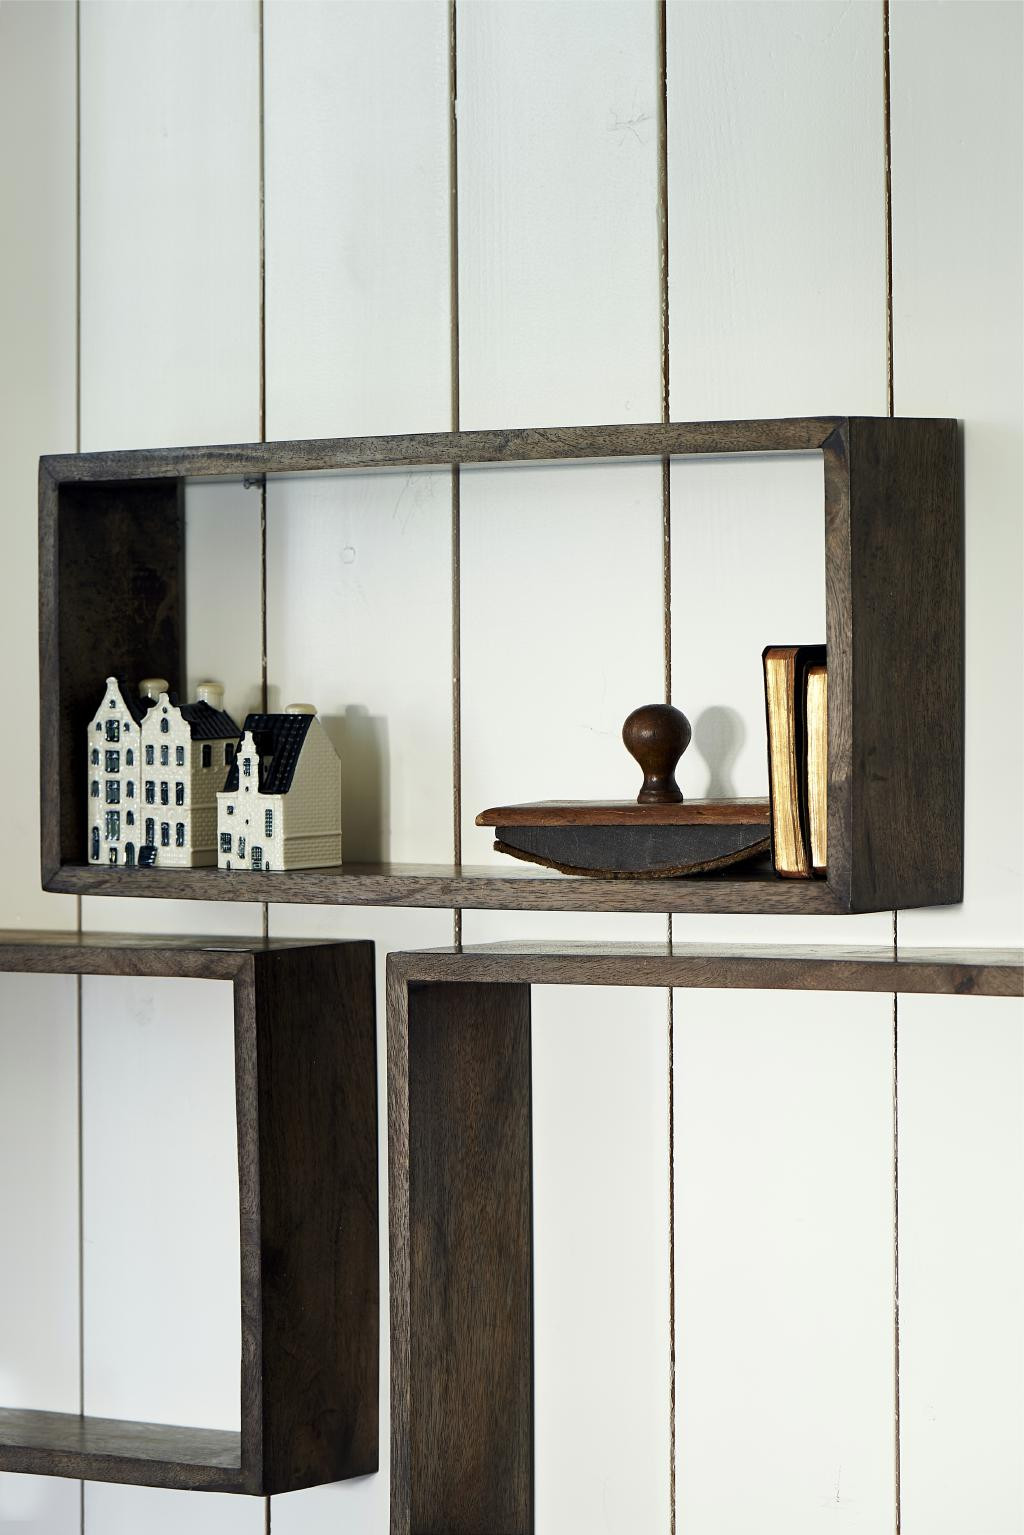 Oxford Wall Shelf M / Rivièra Maison